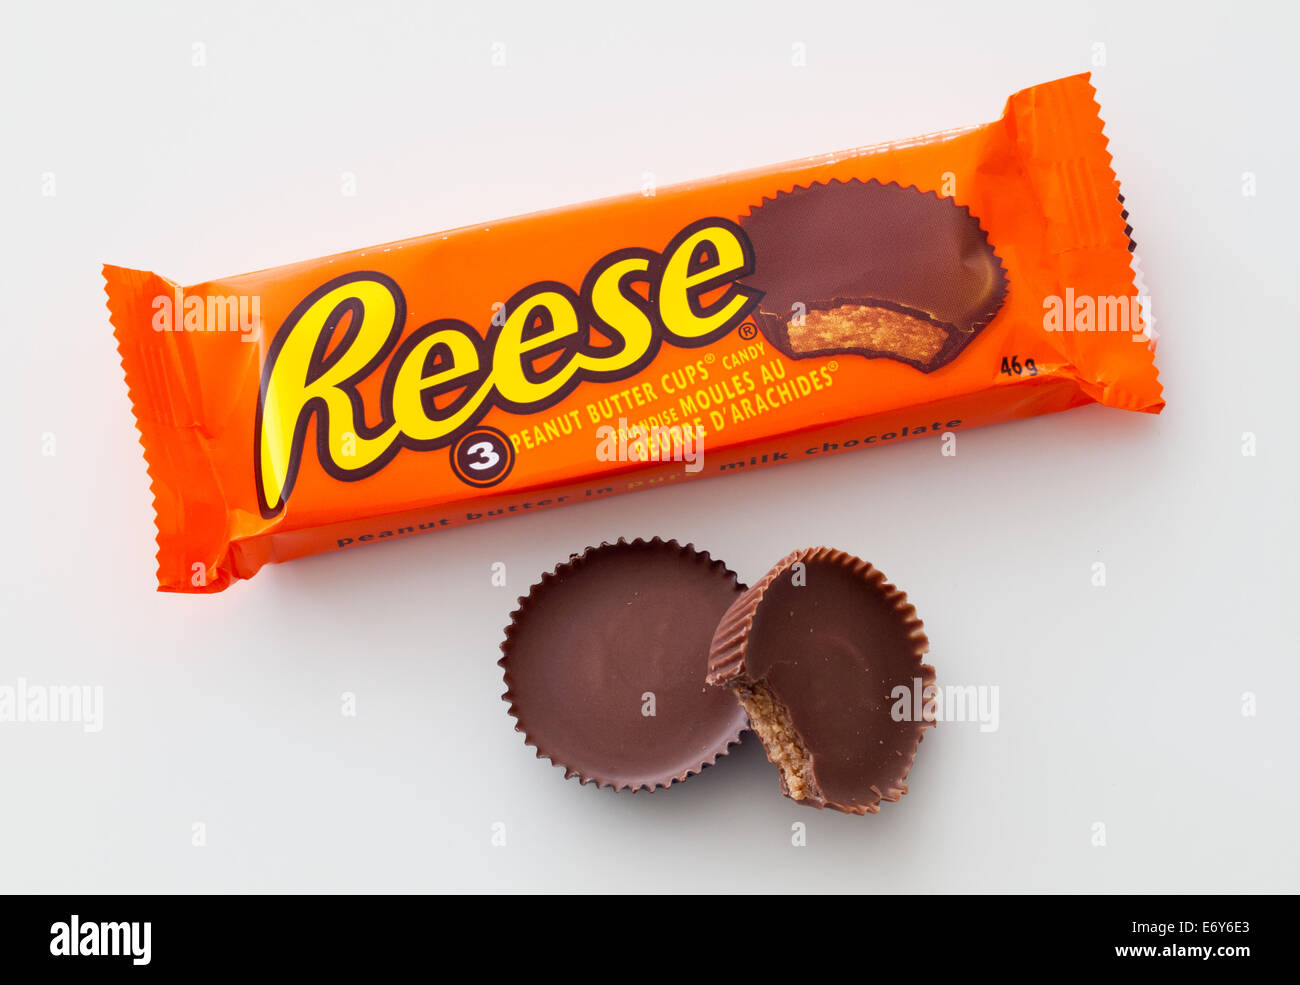 Delicious Reese's Peanut Butter Cups, produced by The Hershey ...